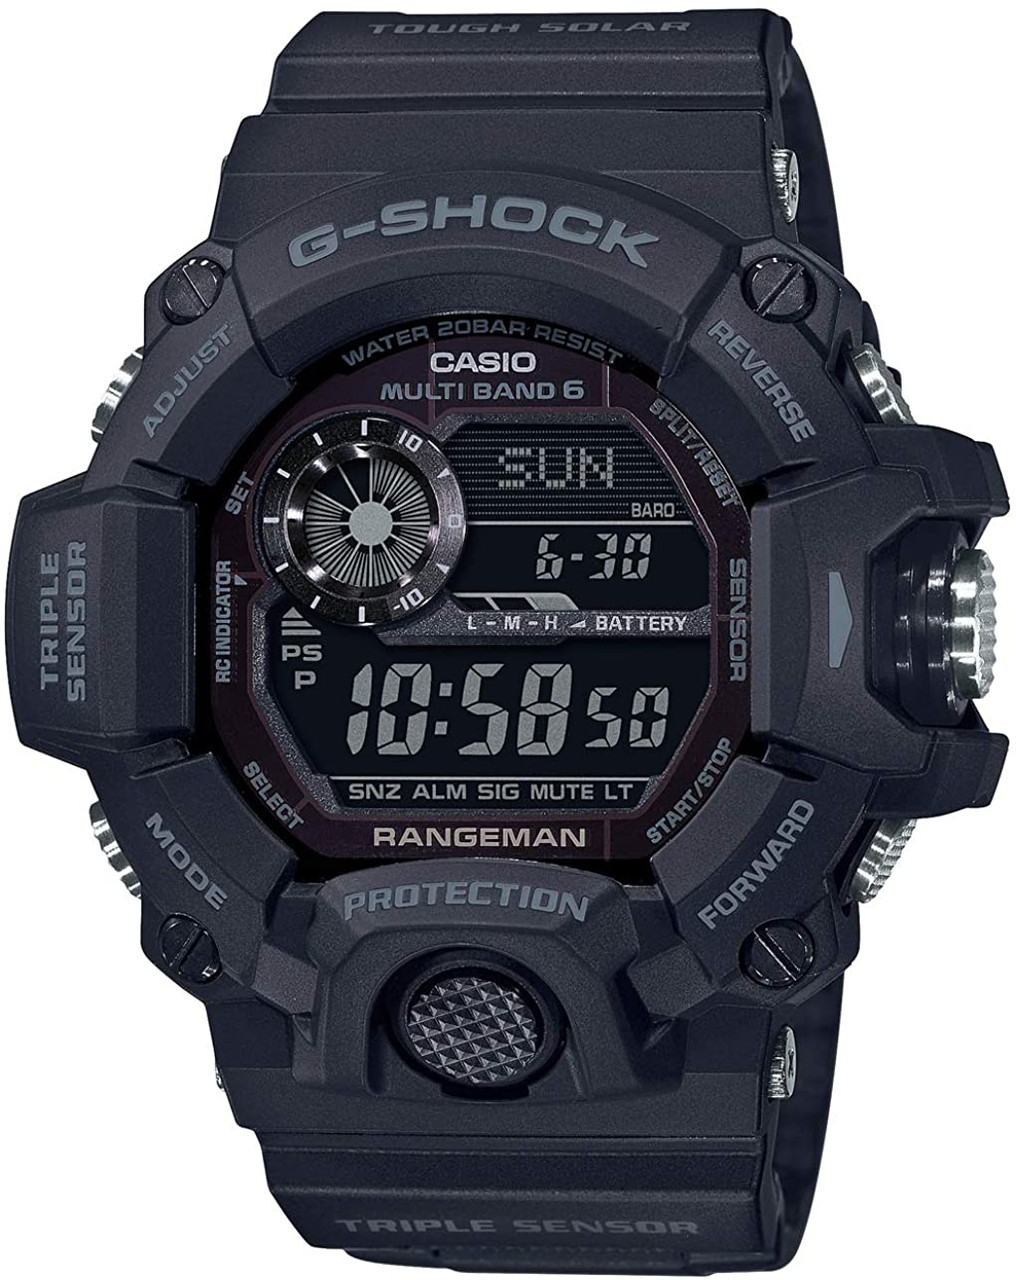 Casio Rangeman GW-9400J-1BJF Black Out Carbon